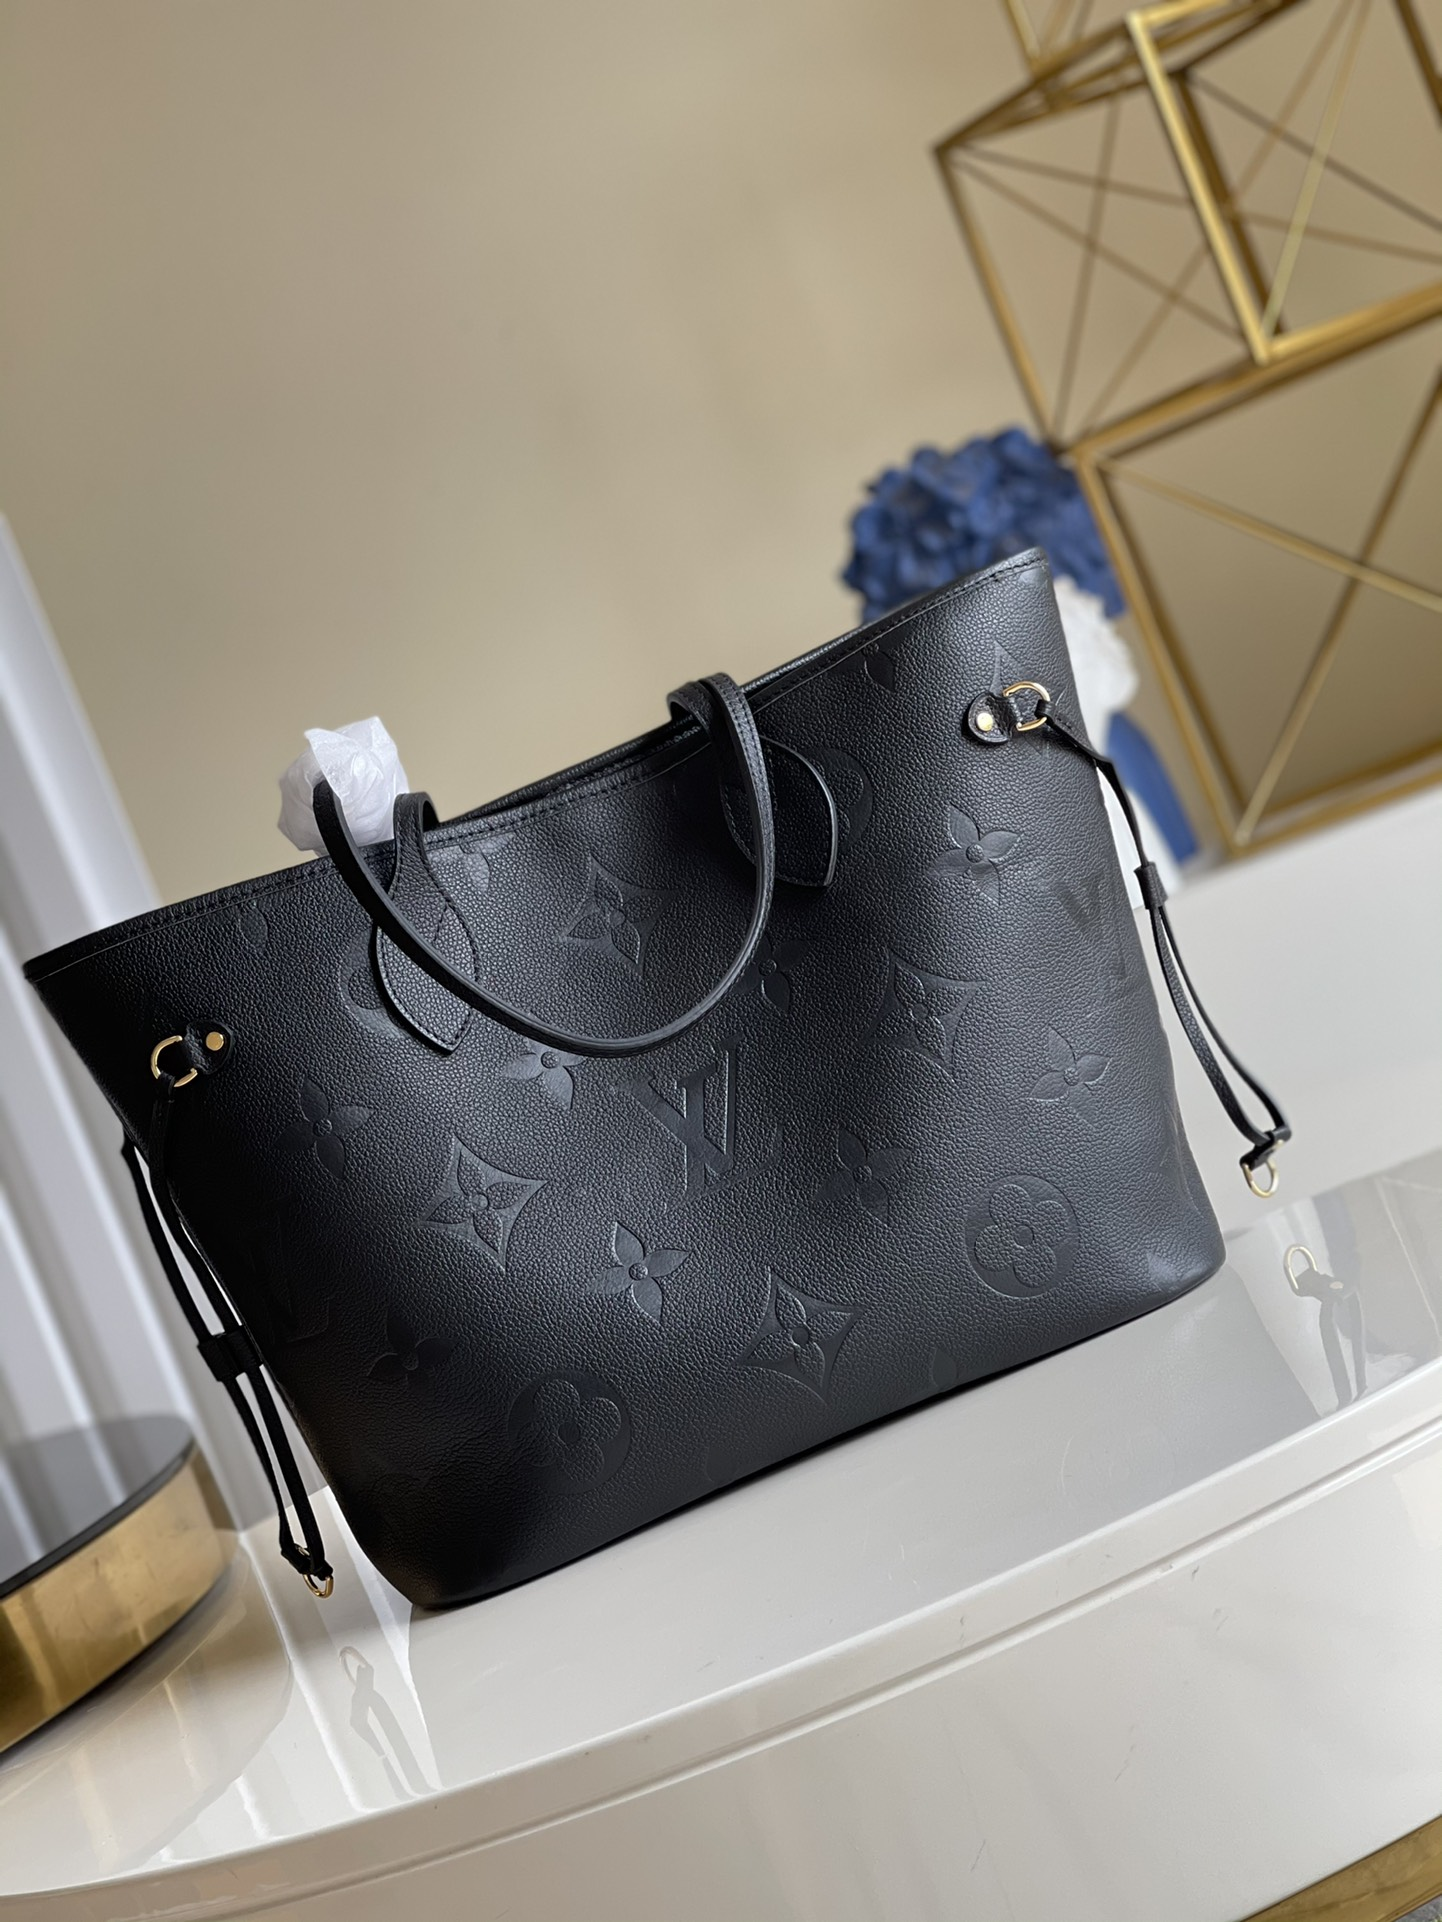 Replica Louis Vuitton M45685 Neverfull MM Embossed Cowhide Leather Black